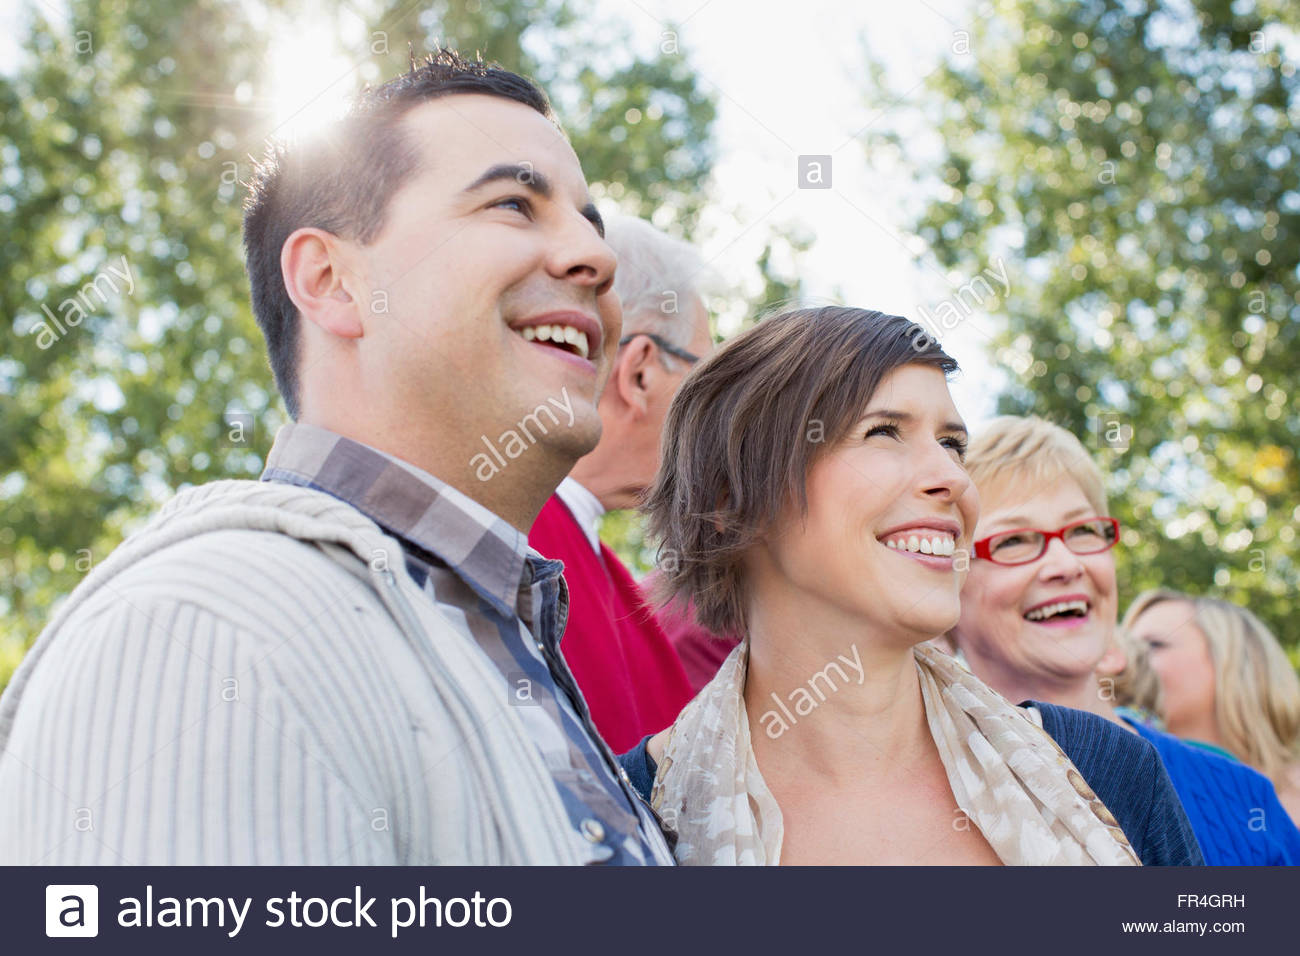 Husband and wife with parents and other family. - Stock Image